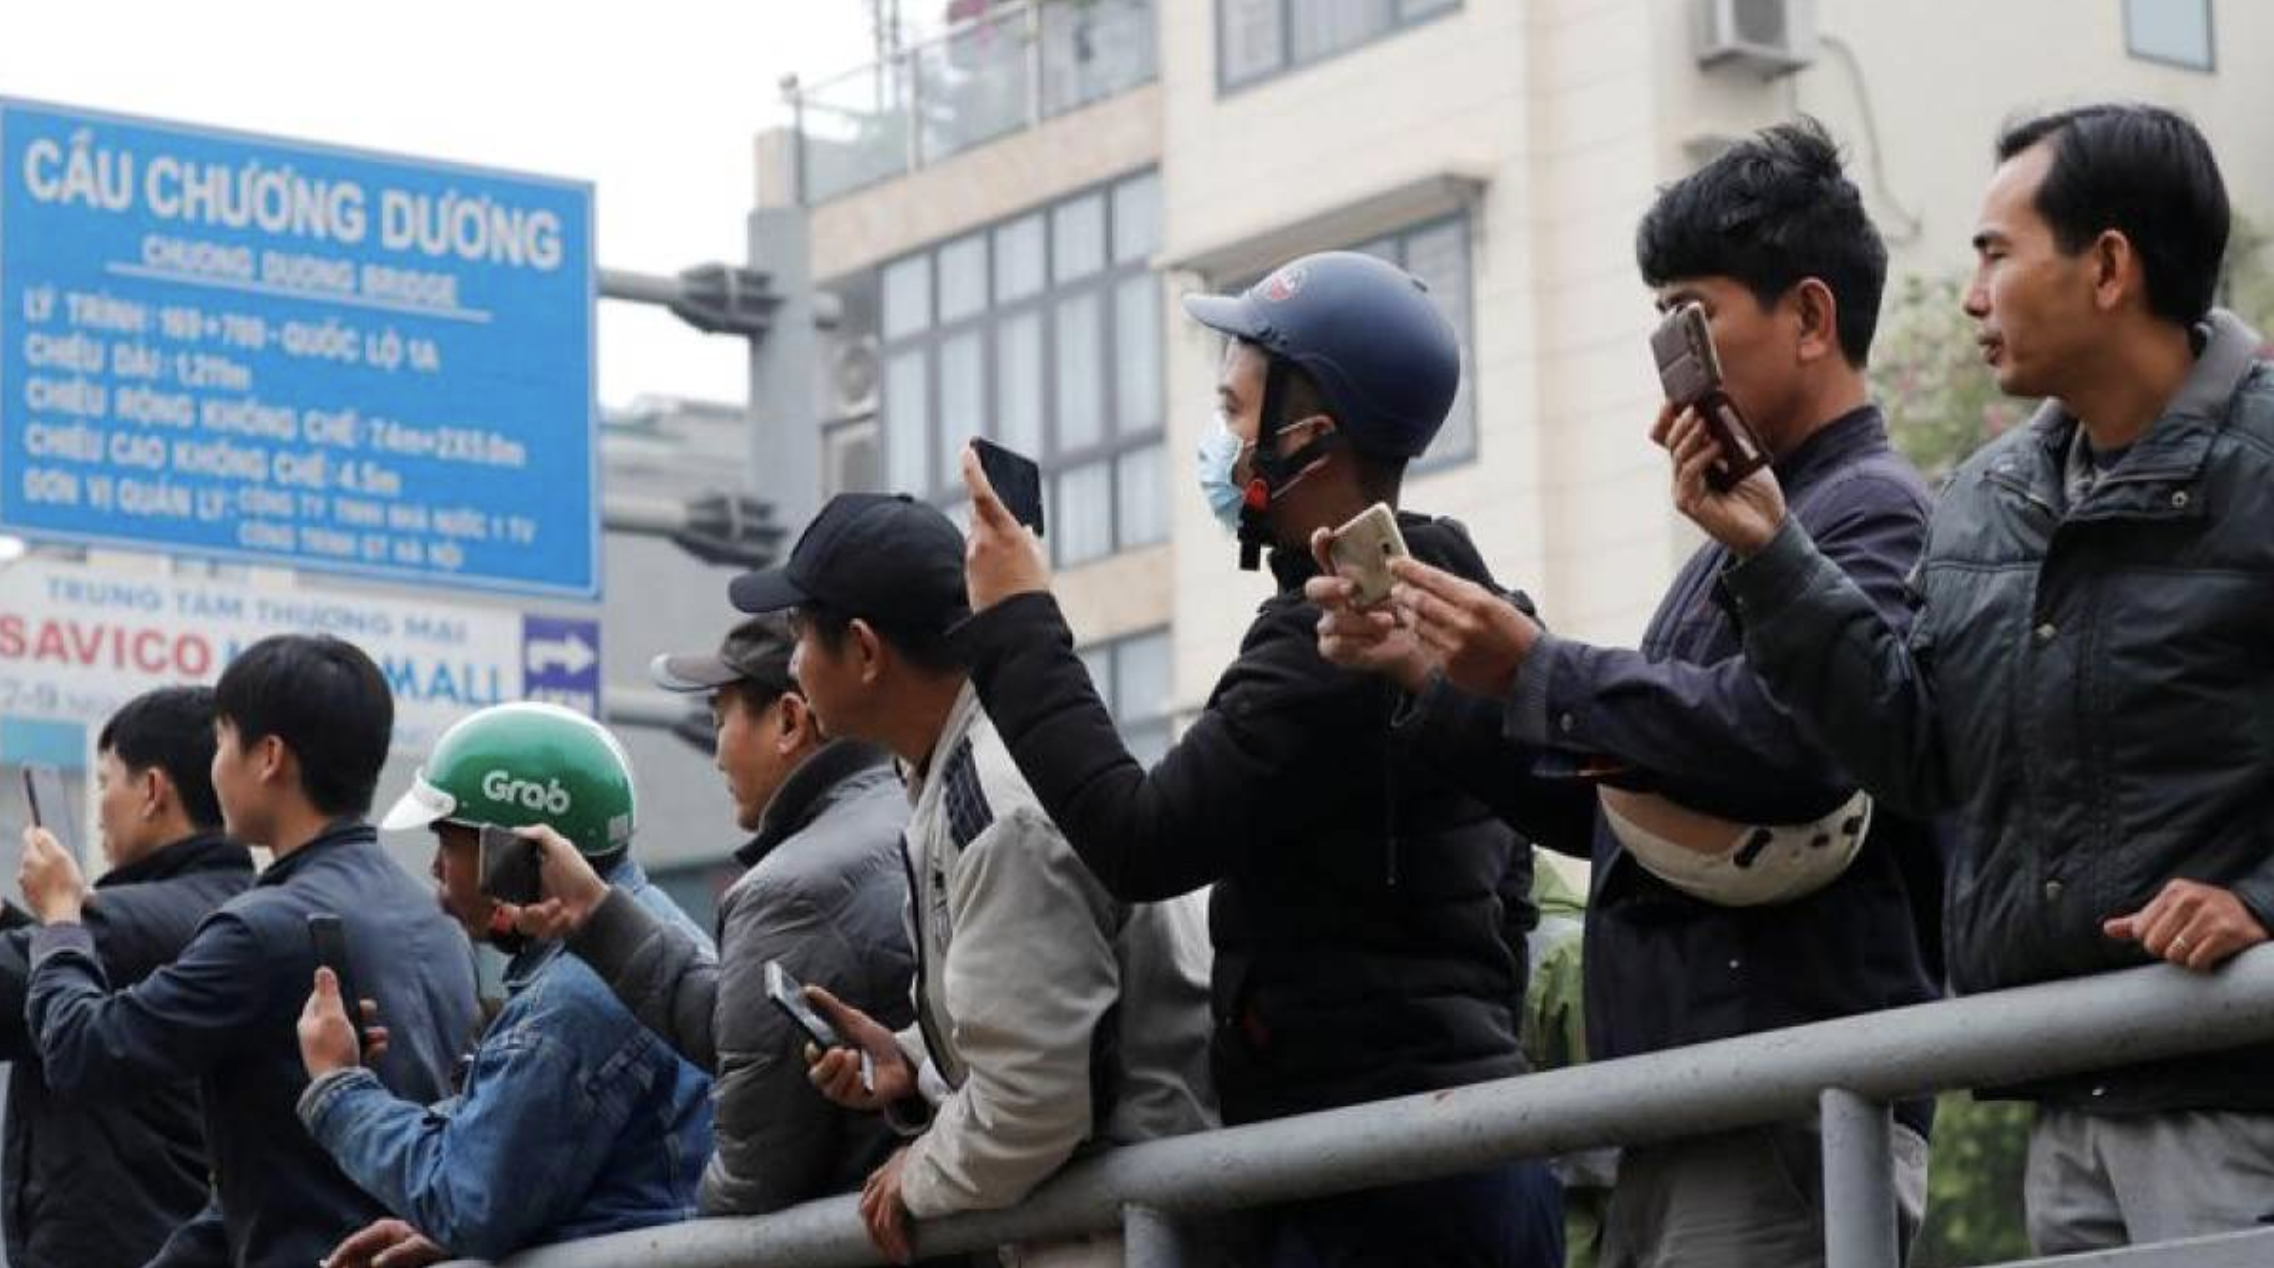 Deadly land dispute in Vietnam sparks crackdown on 'critical' social media